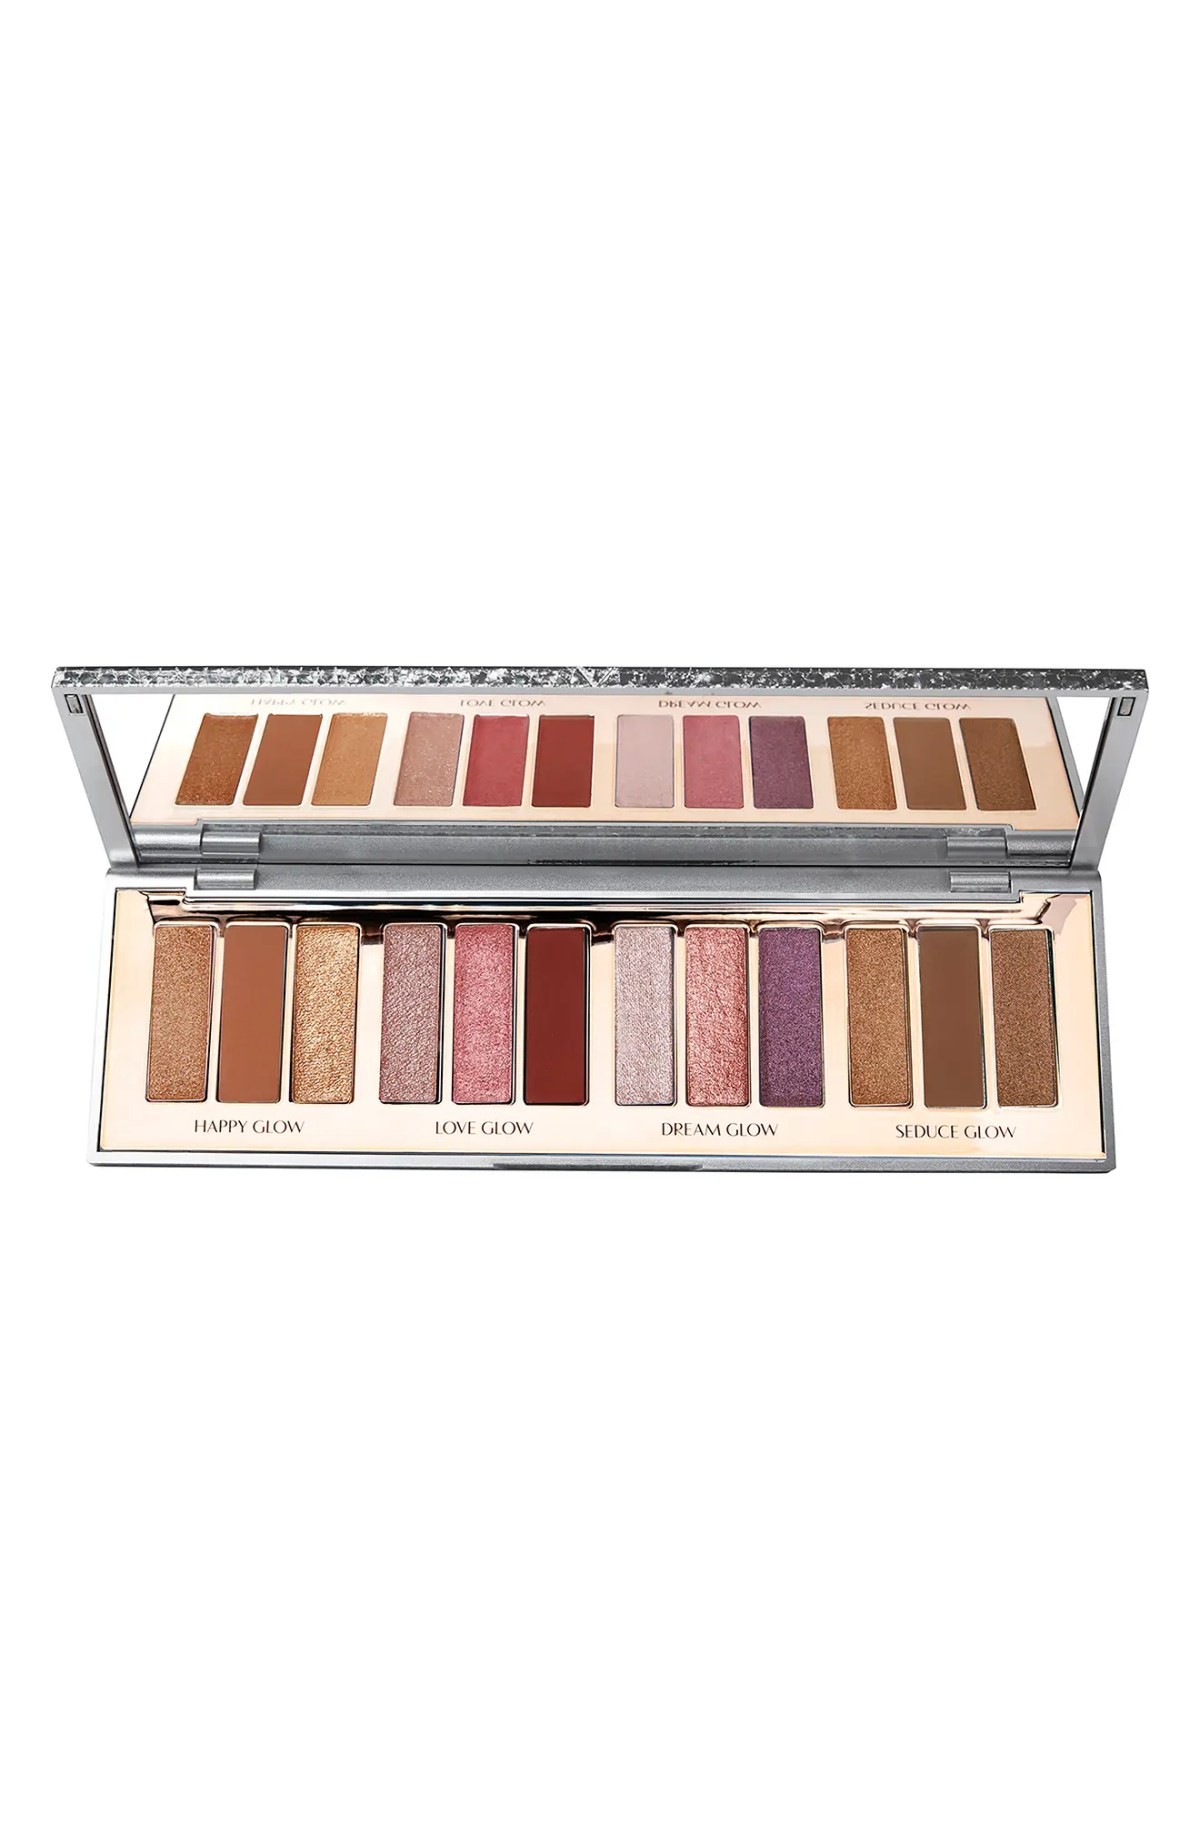 CHARLOTTE TILBURY Bejewelled Eyes to Hypnotize Palette, Main, color, NO COLOR